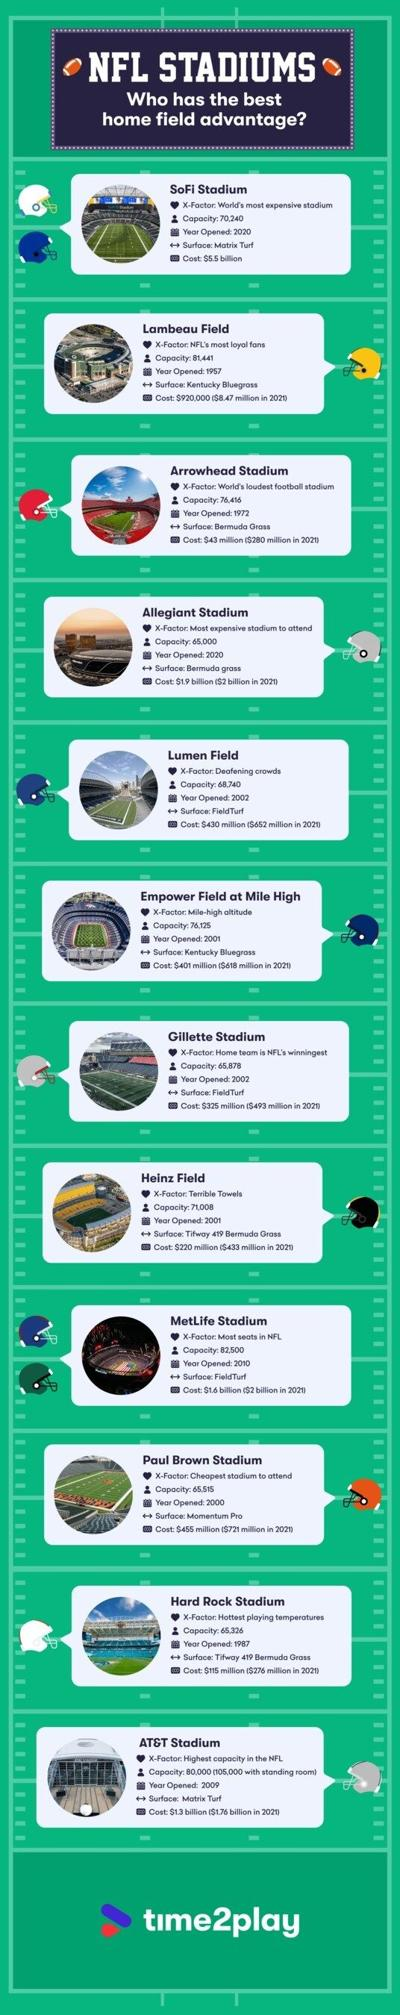 Top 12 NFL stadiums that give their teams an edge